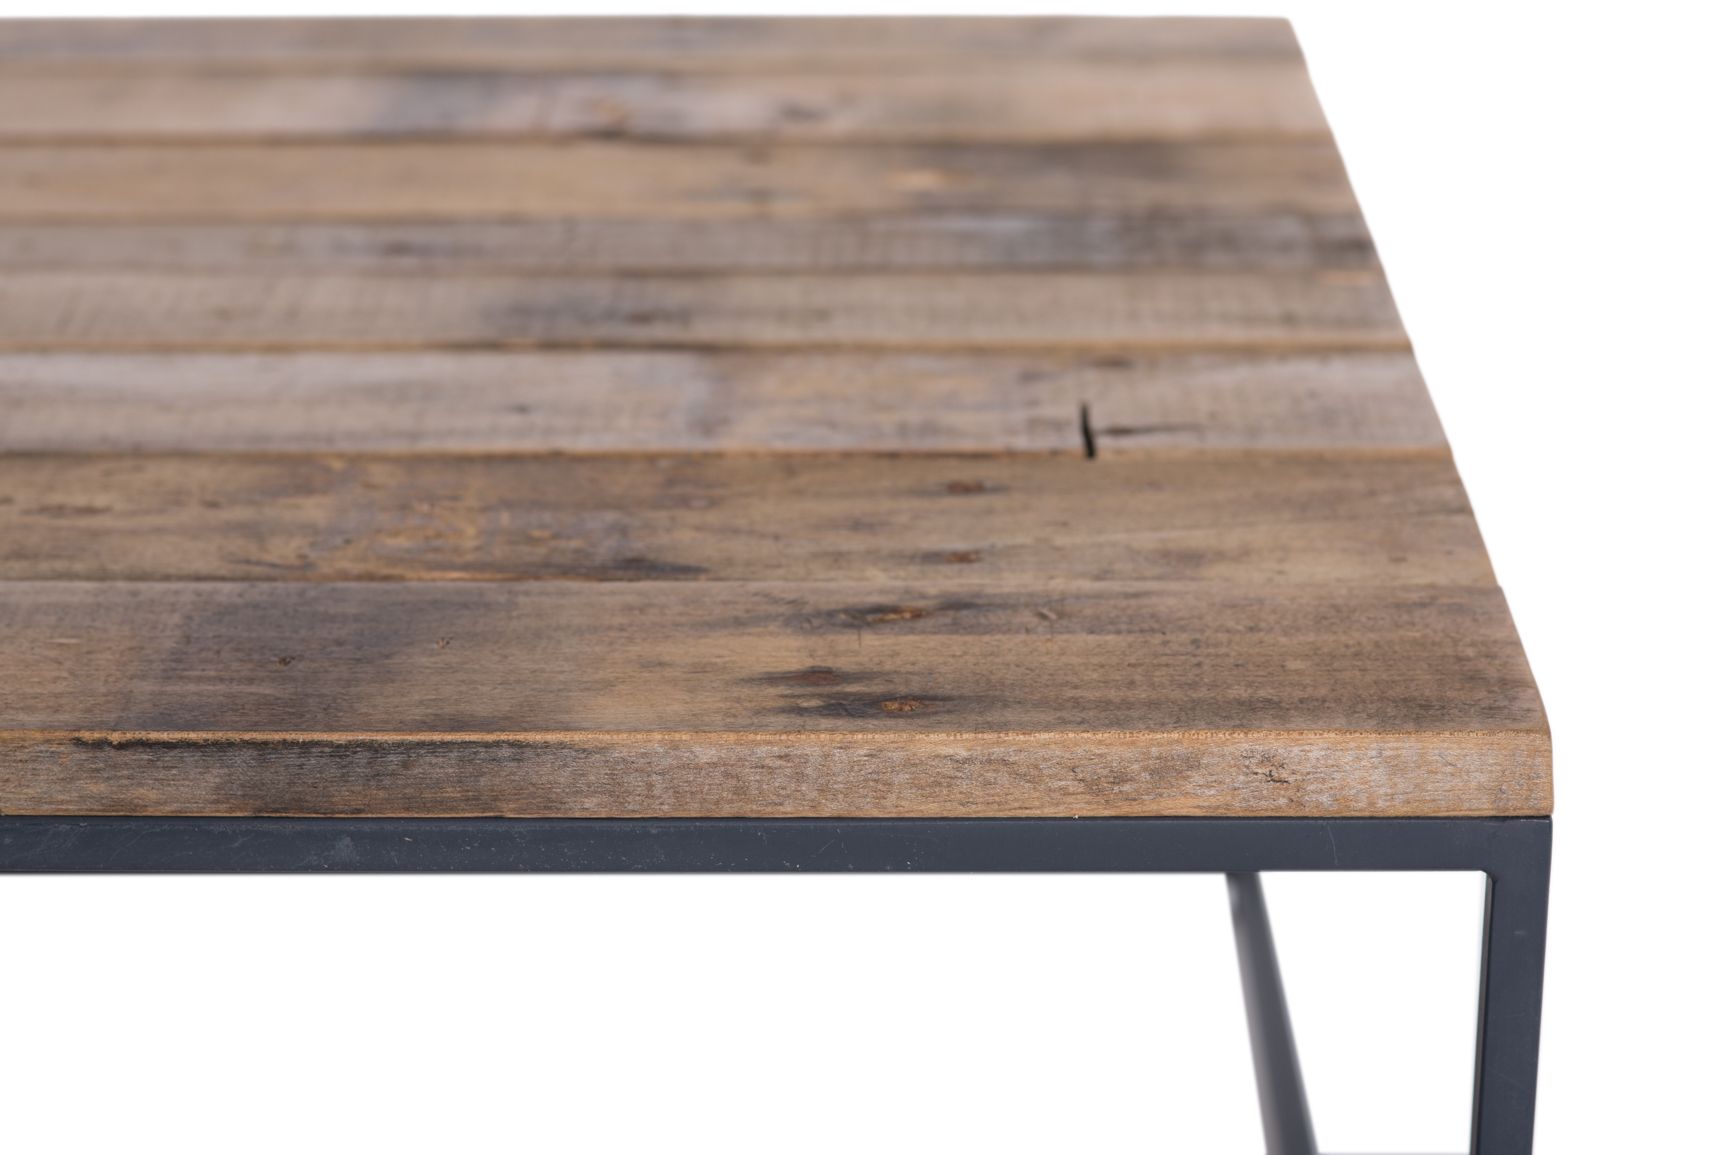 Metal Wood Industrial Coffee Table Rentals | Furniture ...